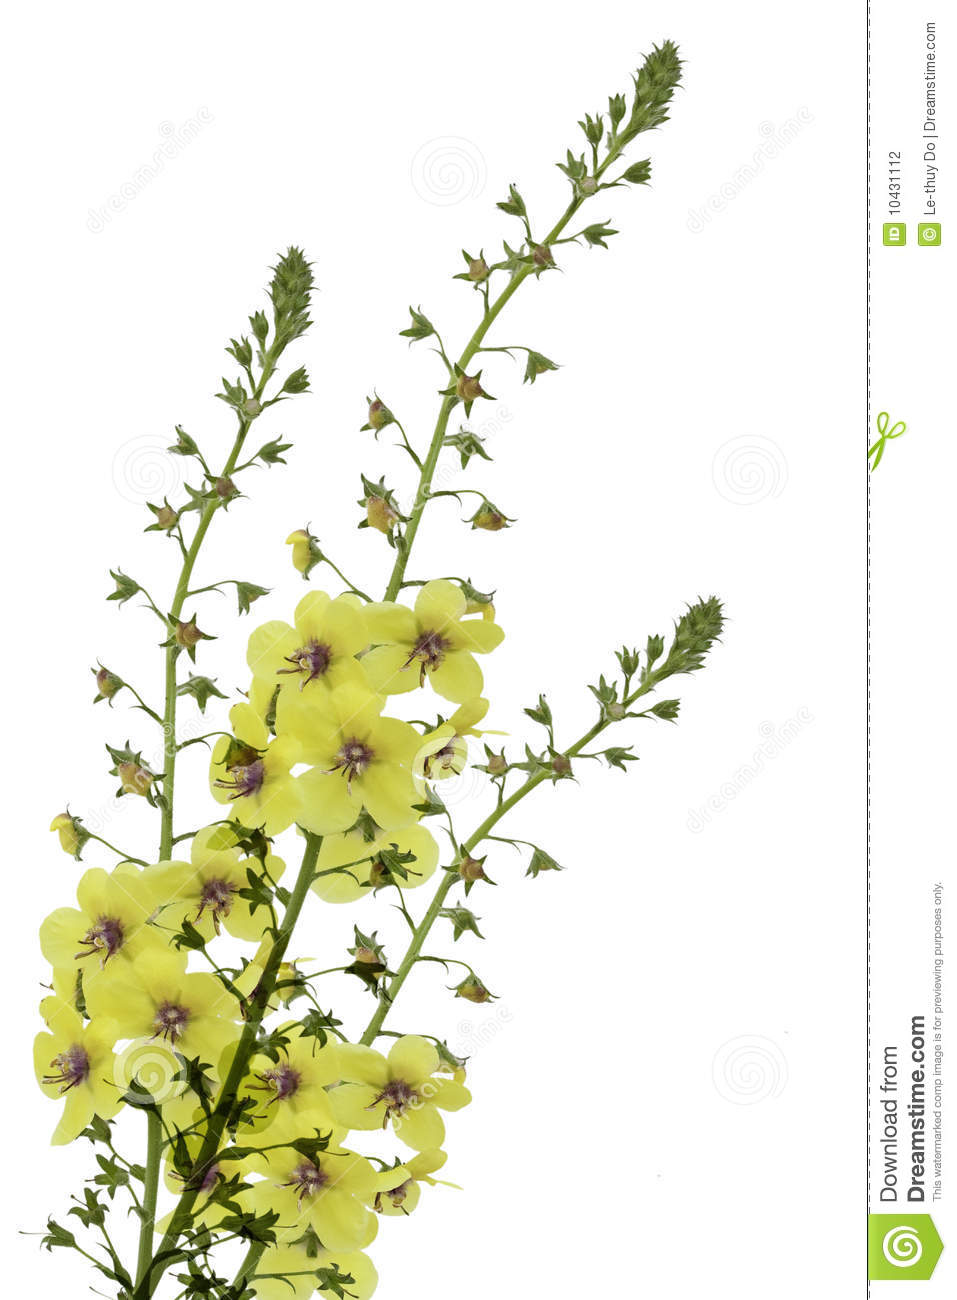 Yellow wild flower stock photo image of leaf background 10431112 yellow wild flower mightylinksfo